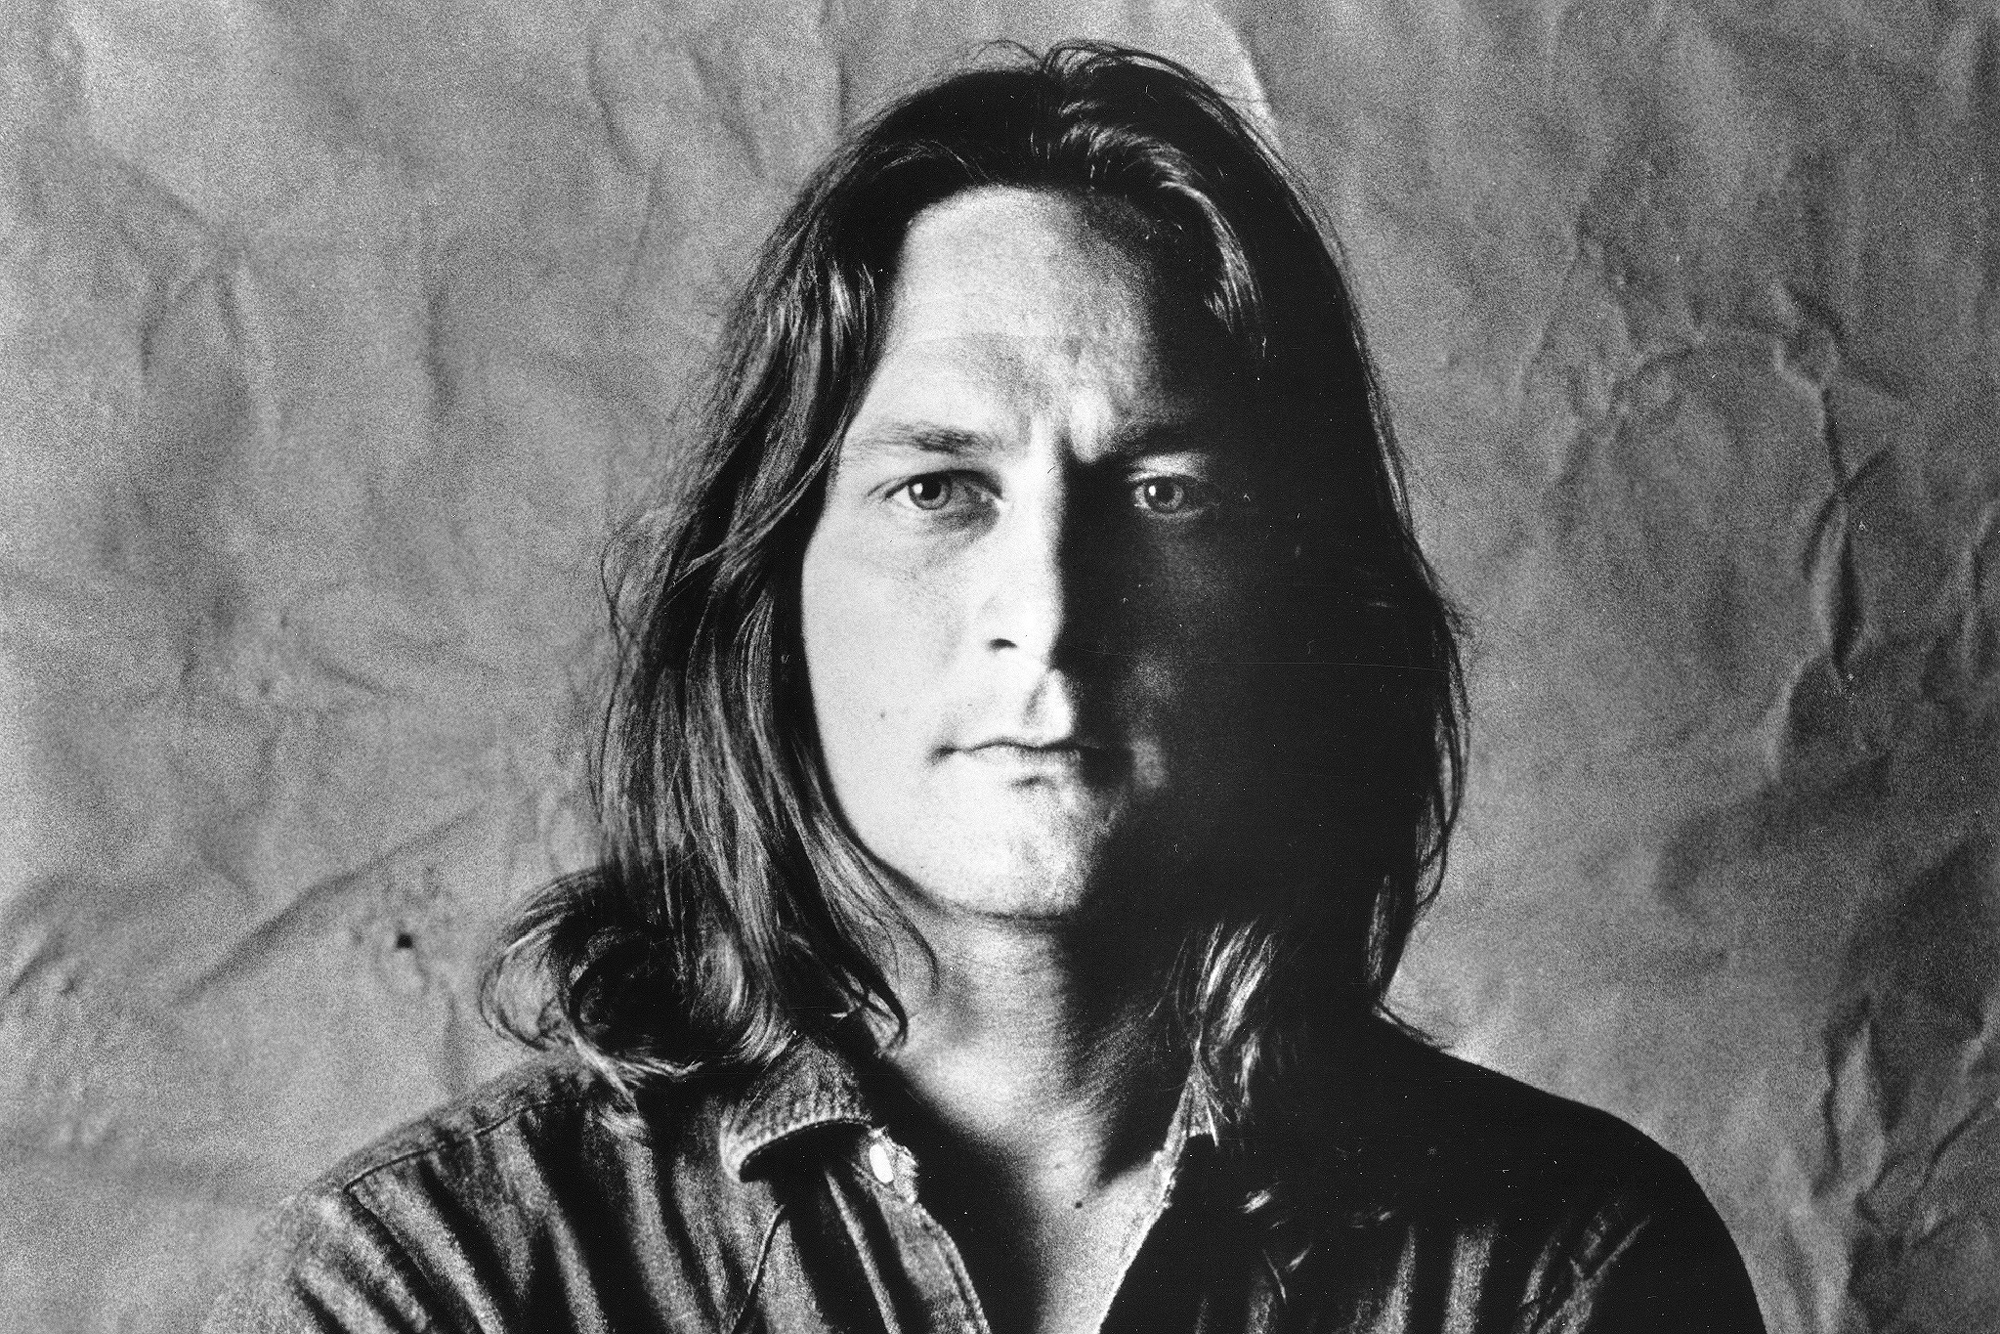 Gene Clark's 'No Other' Deluxe Reissue: Album Review - Rolling Stone